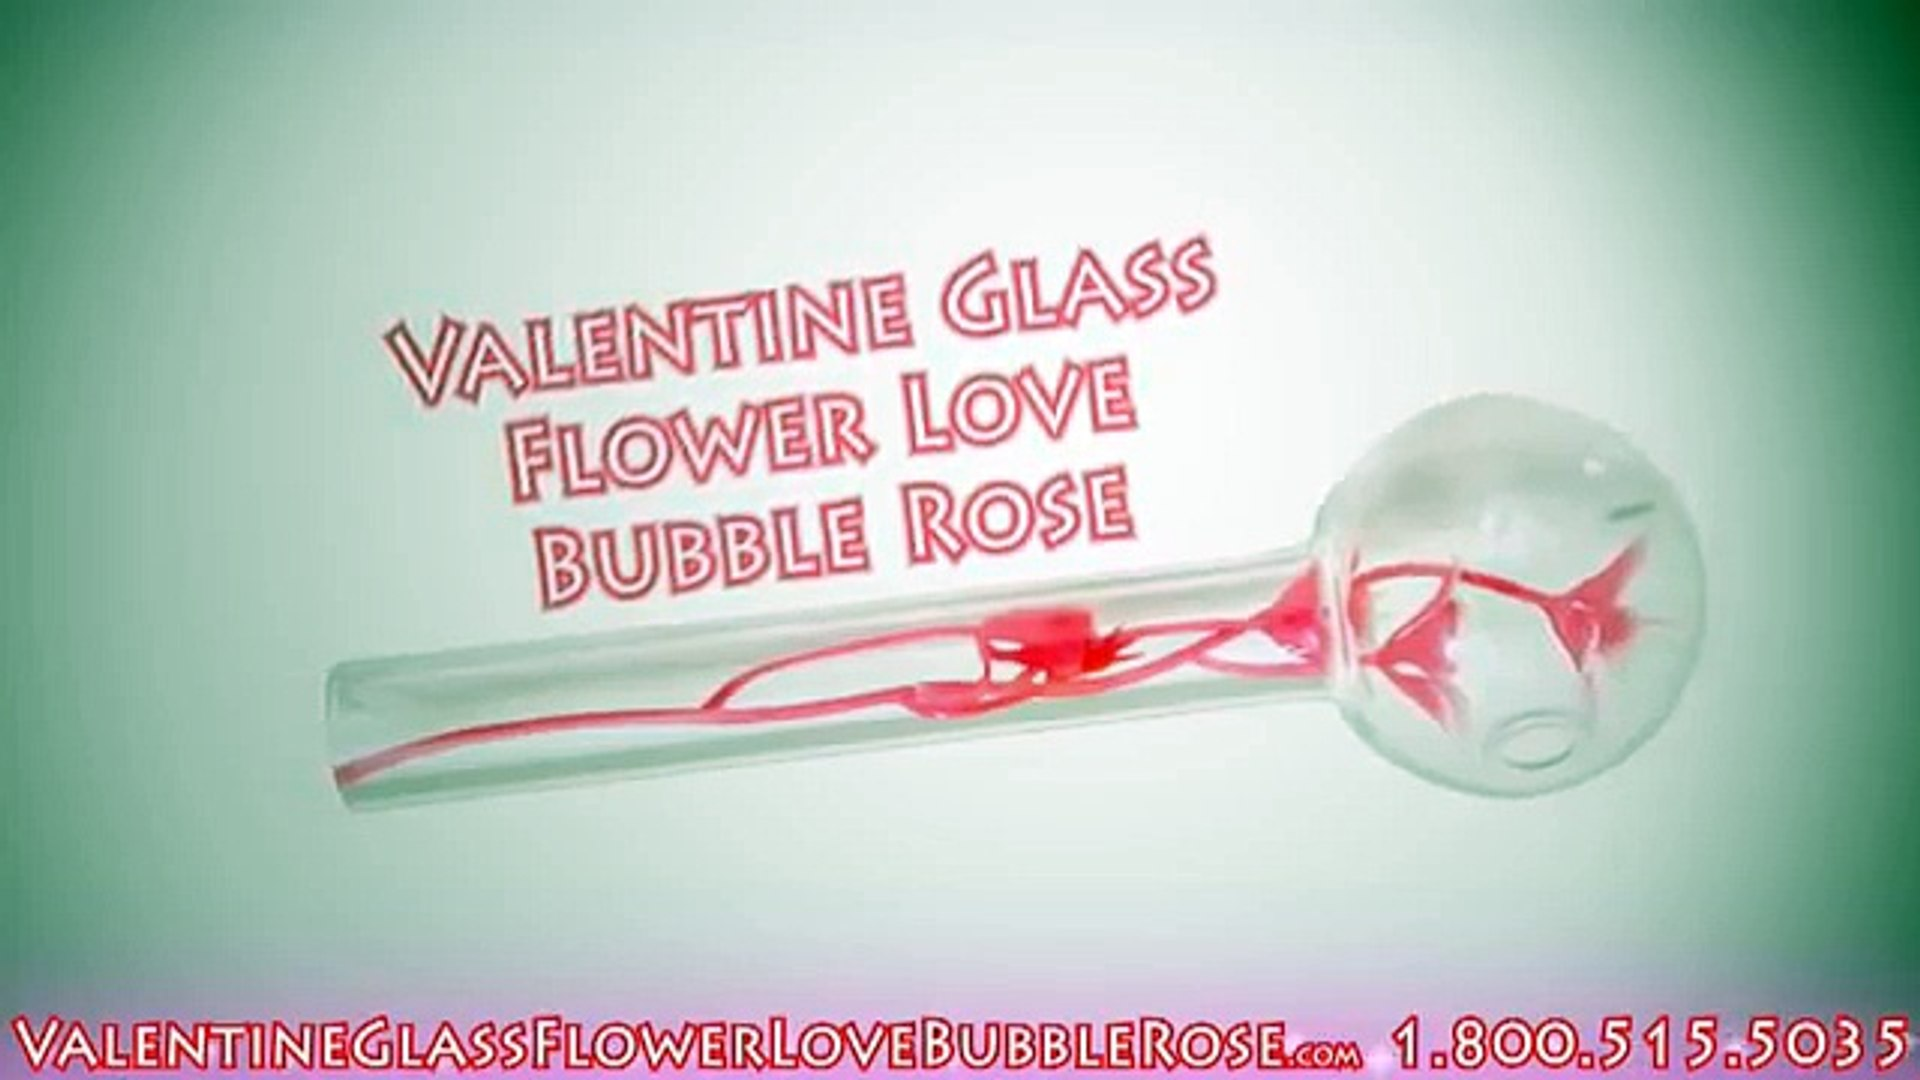 Valentine Rose Oil Burning Glass Pipes - Efficient Straight Shooter Valentine Rose Pipe with faux Ro